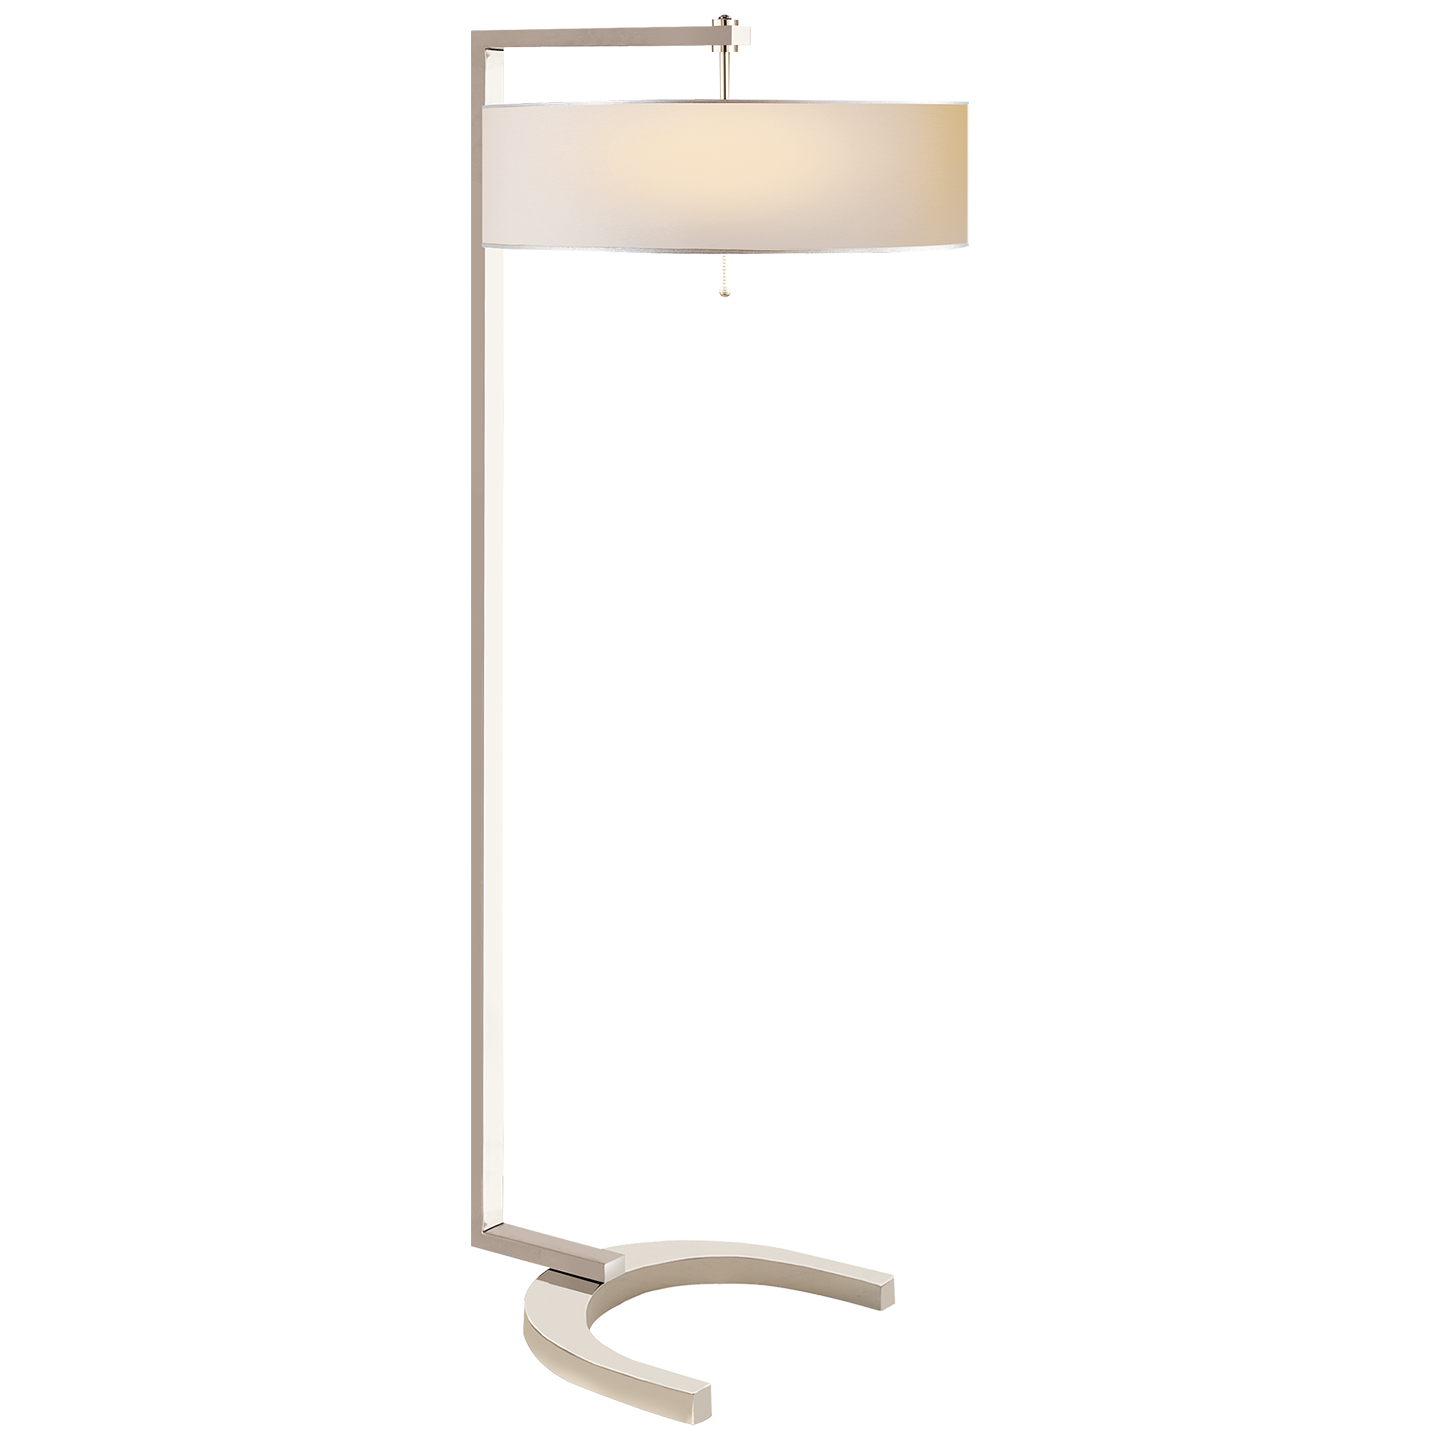 Hudson Floor Lamp In Polished Nickel With White Paper Shade